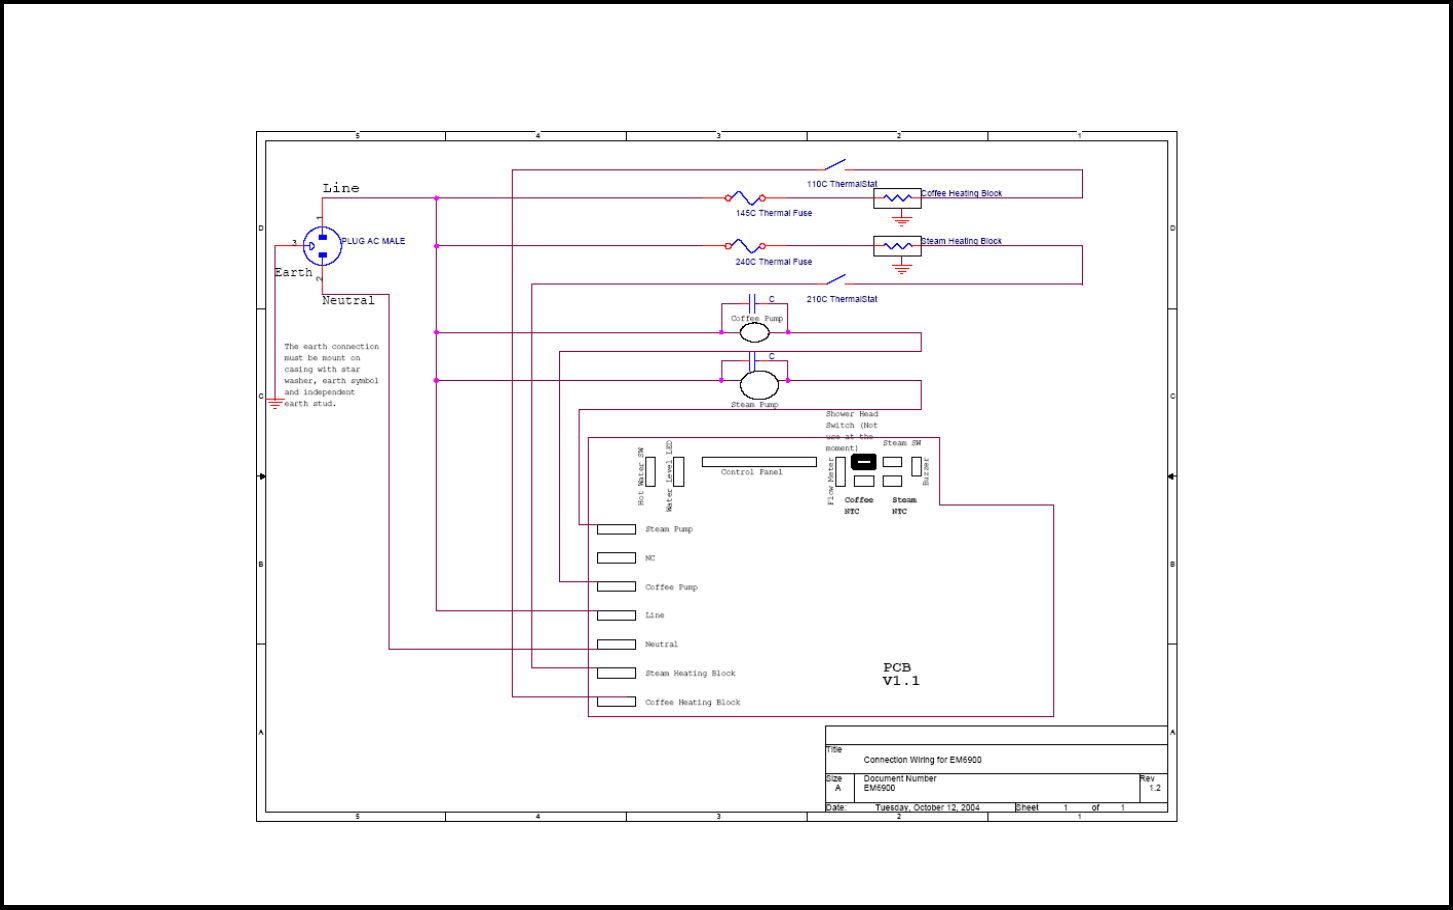 page of sunbeam coffeemaker em user guide manualsonline com em6910 issue a page 19 of 21 circuit diagram